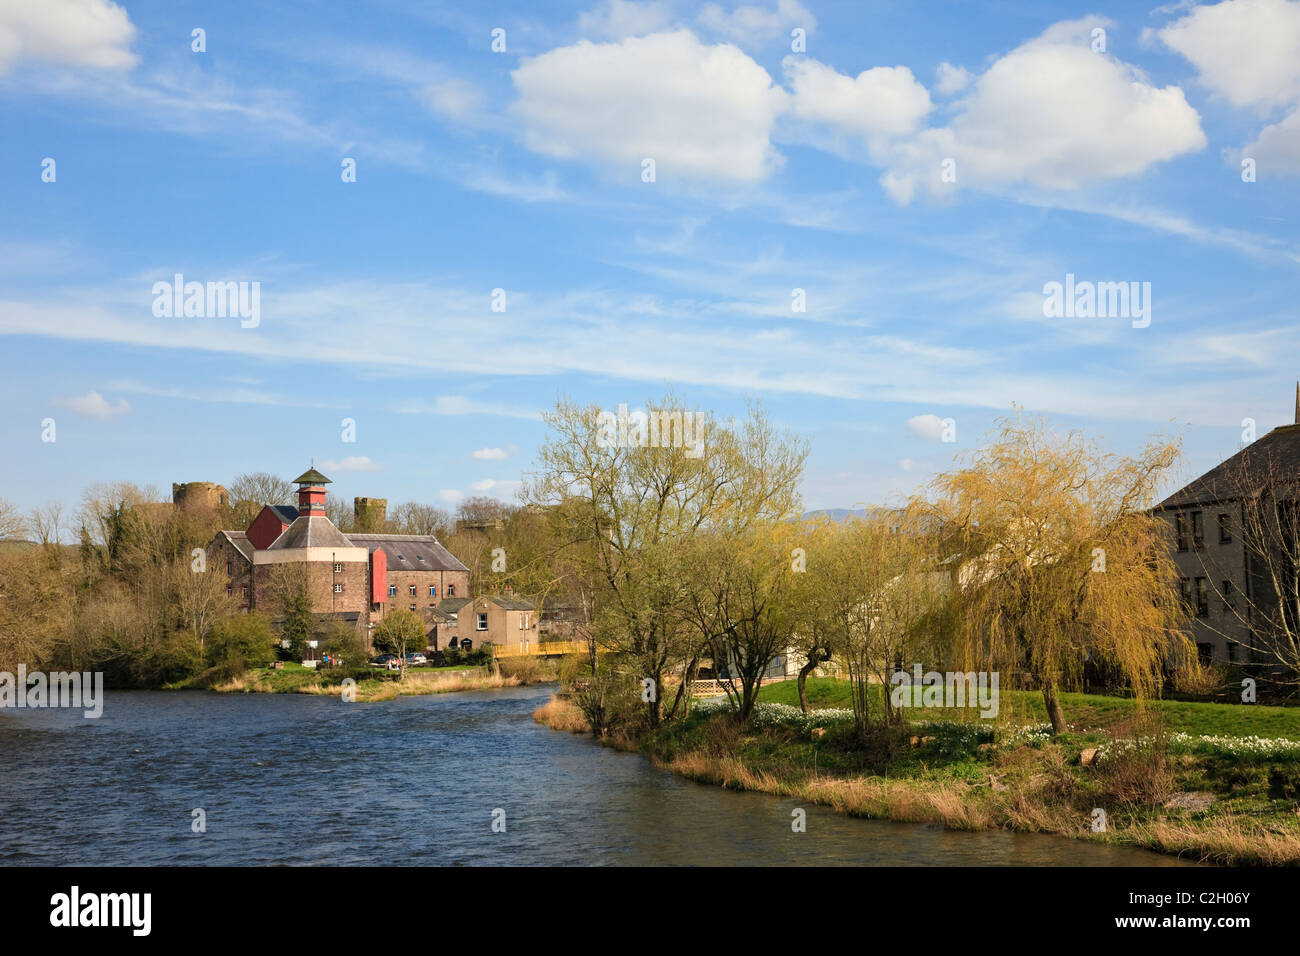 Jennings brewery at the confluence of River Derwent and Cocker. Cockermouth, Allerdale, Cumbria, England, UK, Britain. - Stock Image